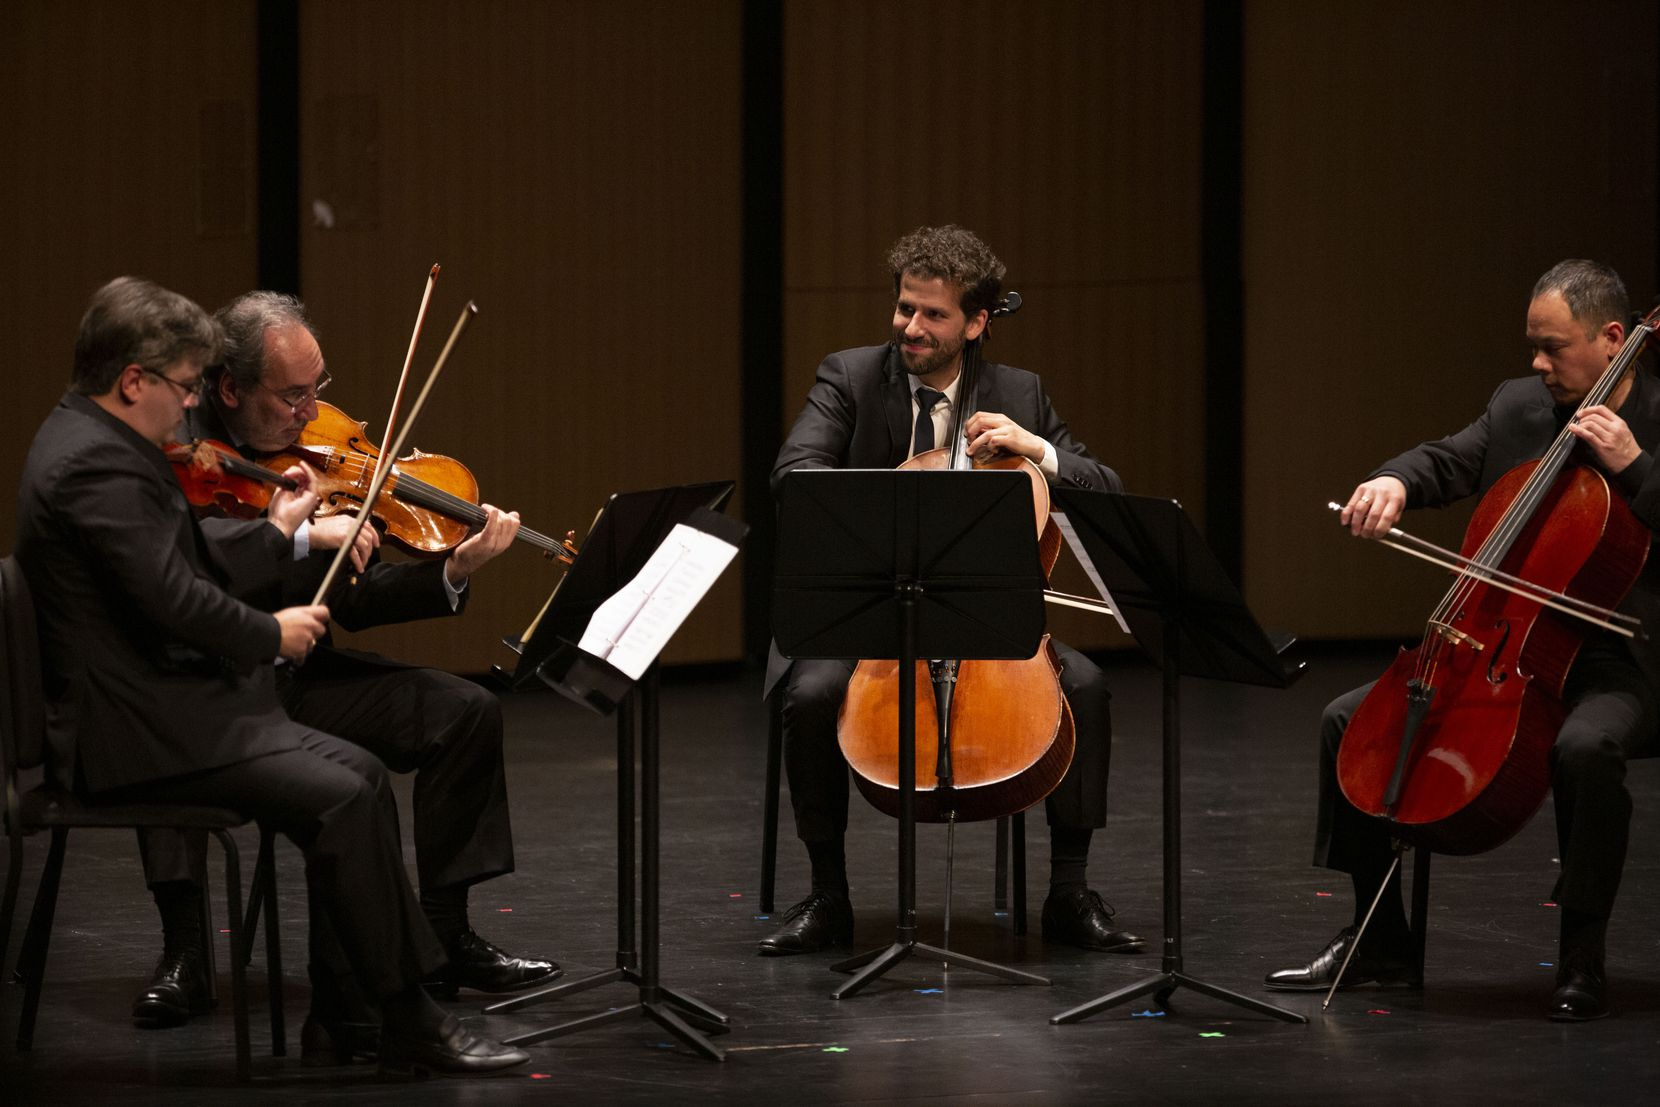 (From left) Violinist Aaron Boyd, violist Toby Hoffman and cellists Nick Canellakis and Bion Tsang perform together in a Chamber Music International concert at Moody Performance Hall in Dallas on Friday, Dec. 6, 2019.